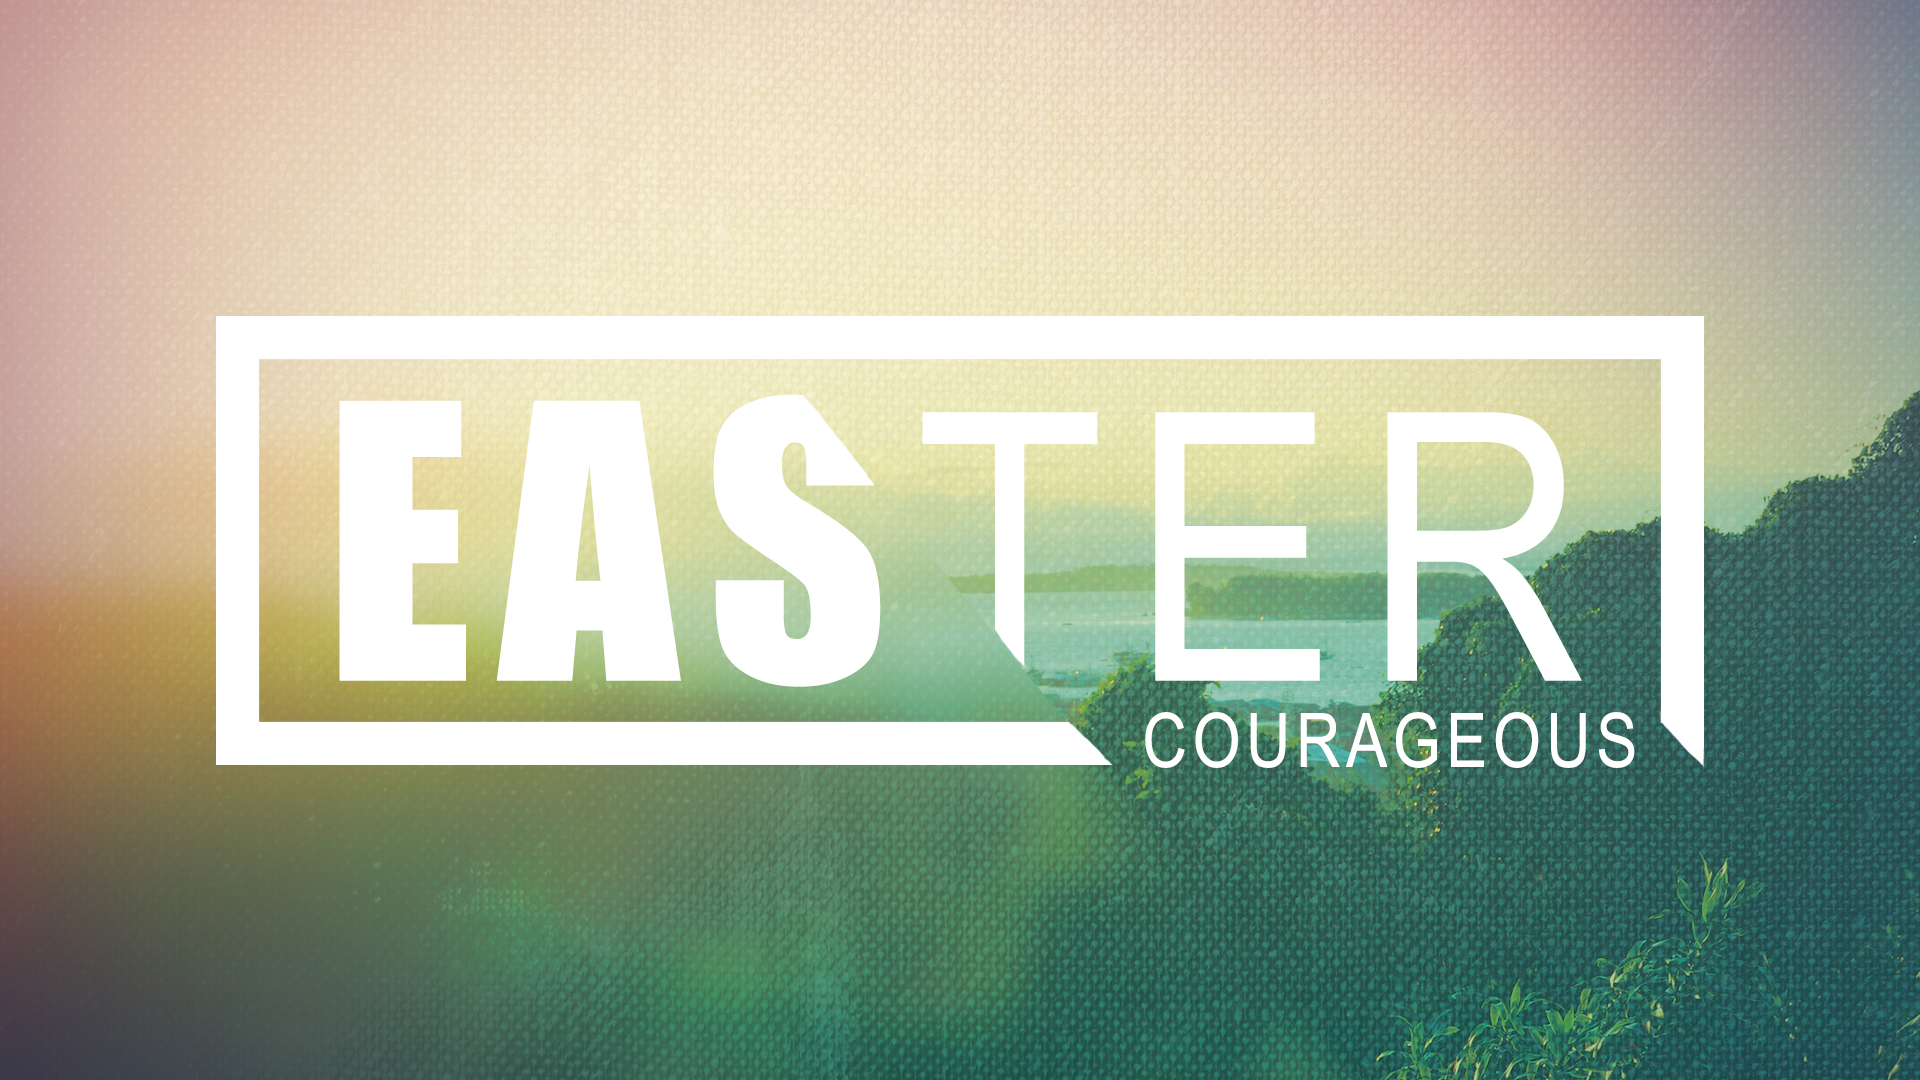 Courageous | Focus | Easter - 4.21.19 | Phillip Martin